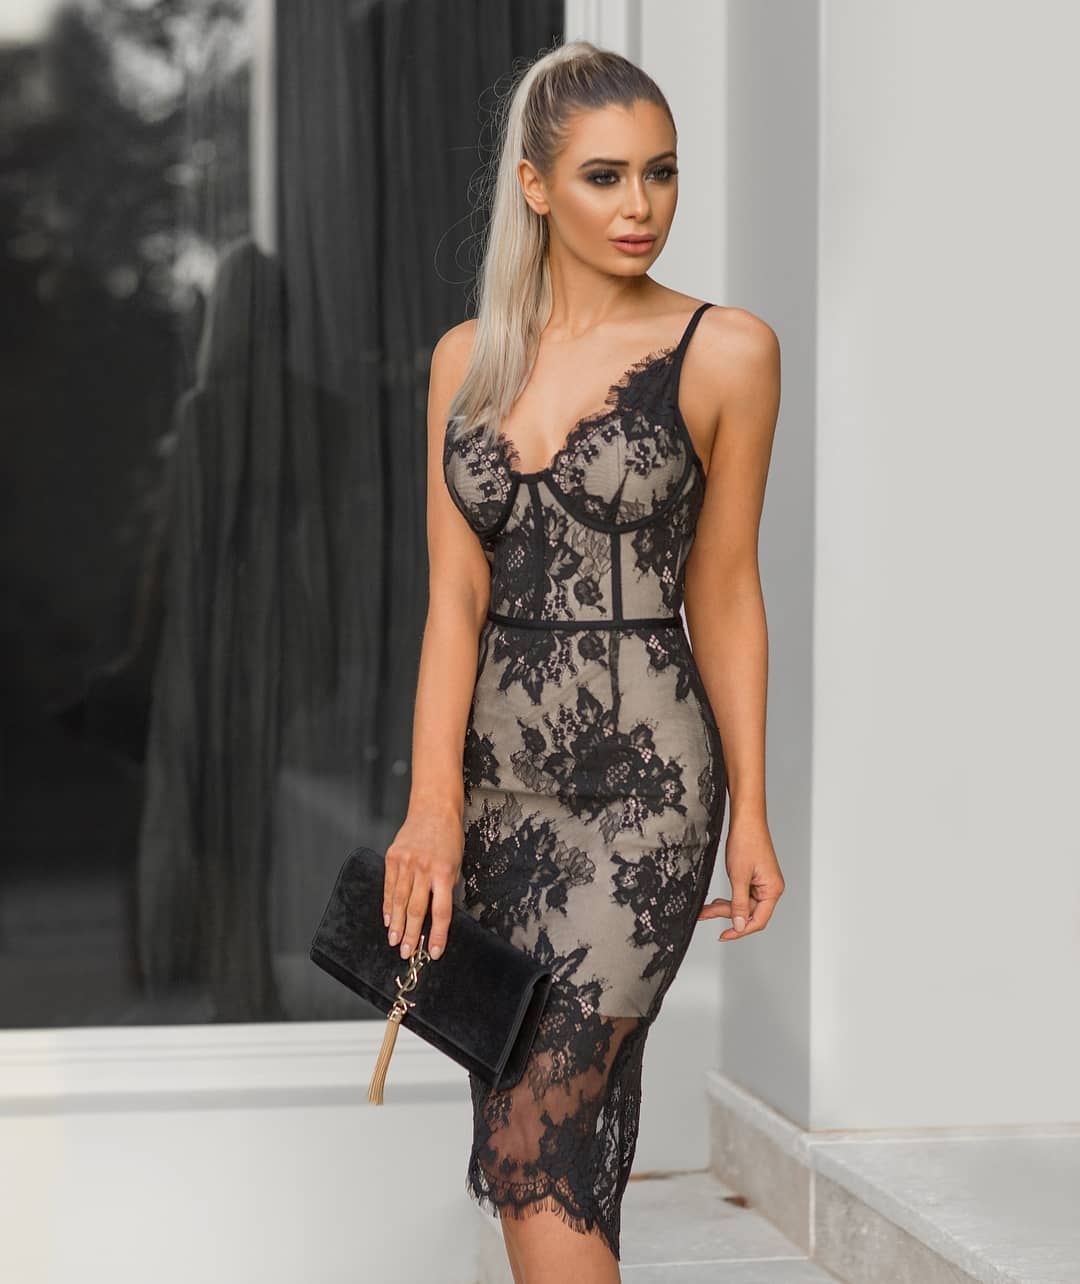 Sheer Black Lace Dress For Summer Cocktail Parties 2019